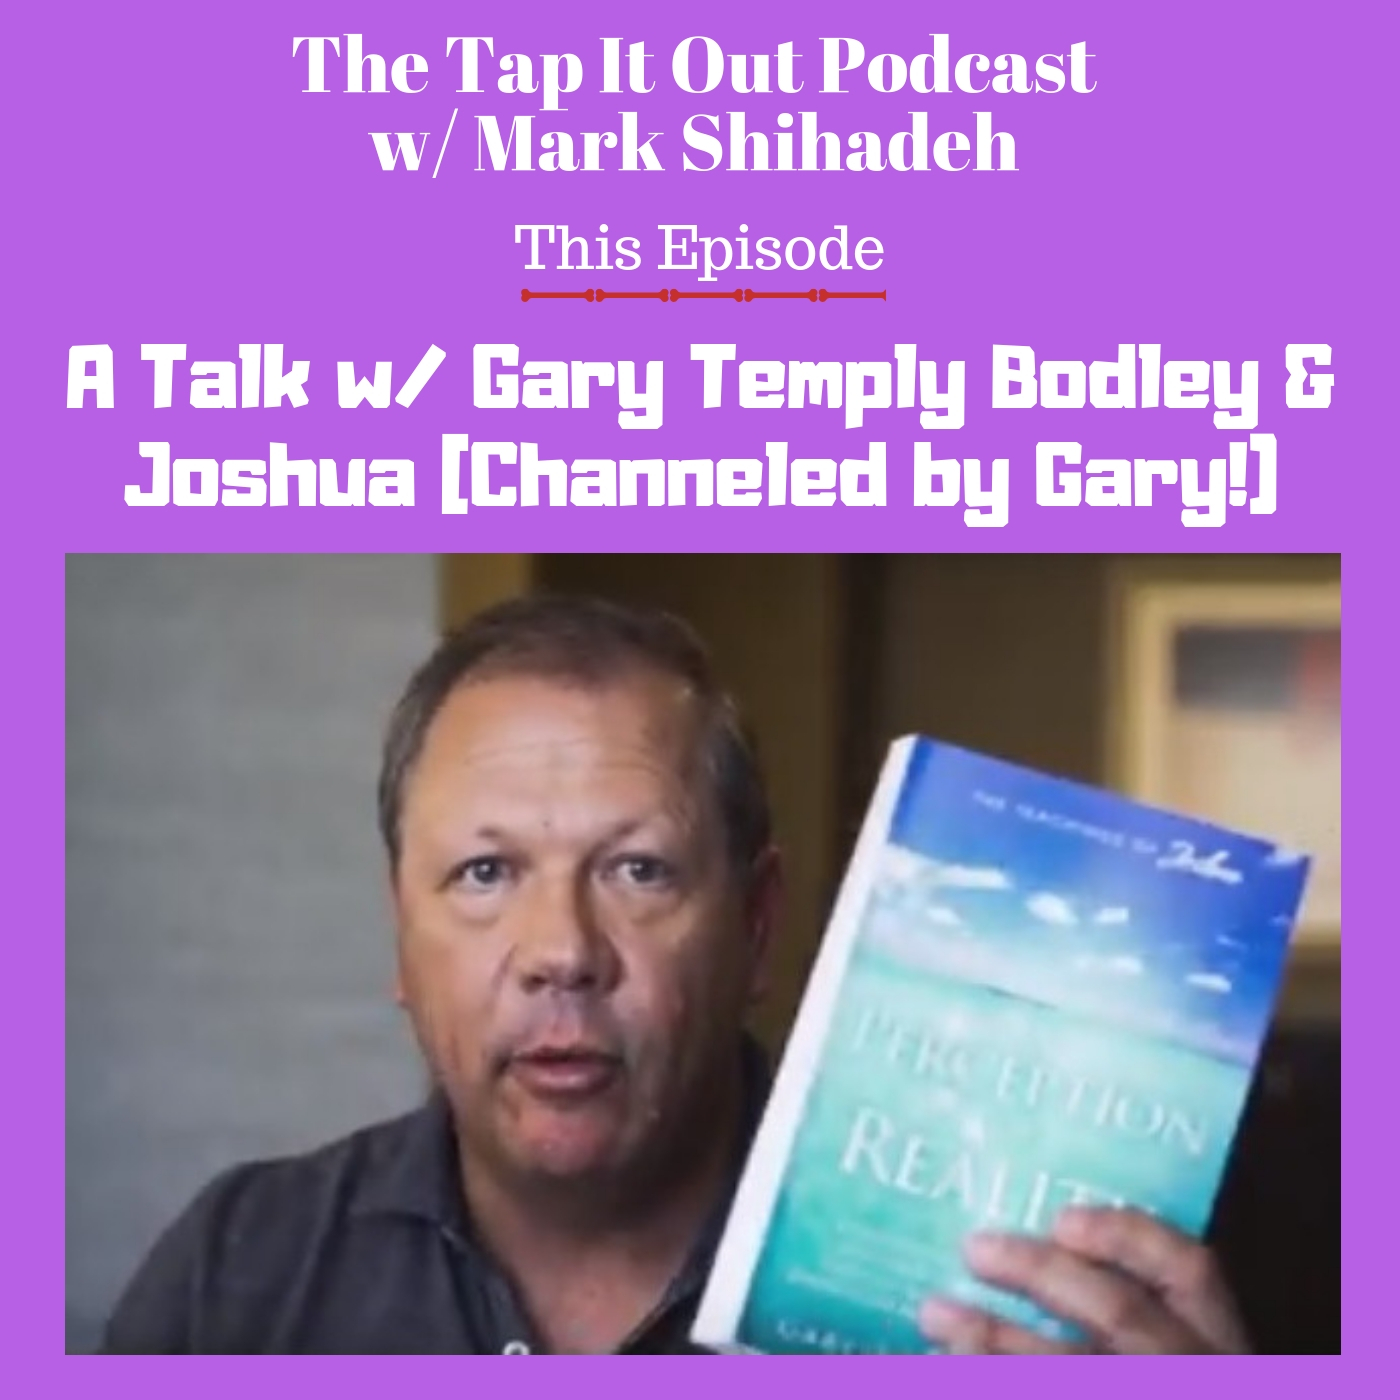 Ep7: A Talk w/ Gary Temply Bodley and Joshua (Channeled by Gary!)